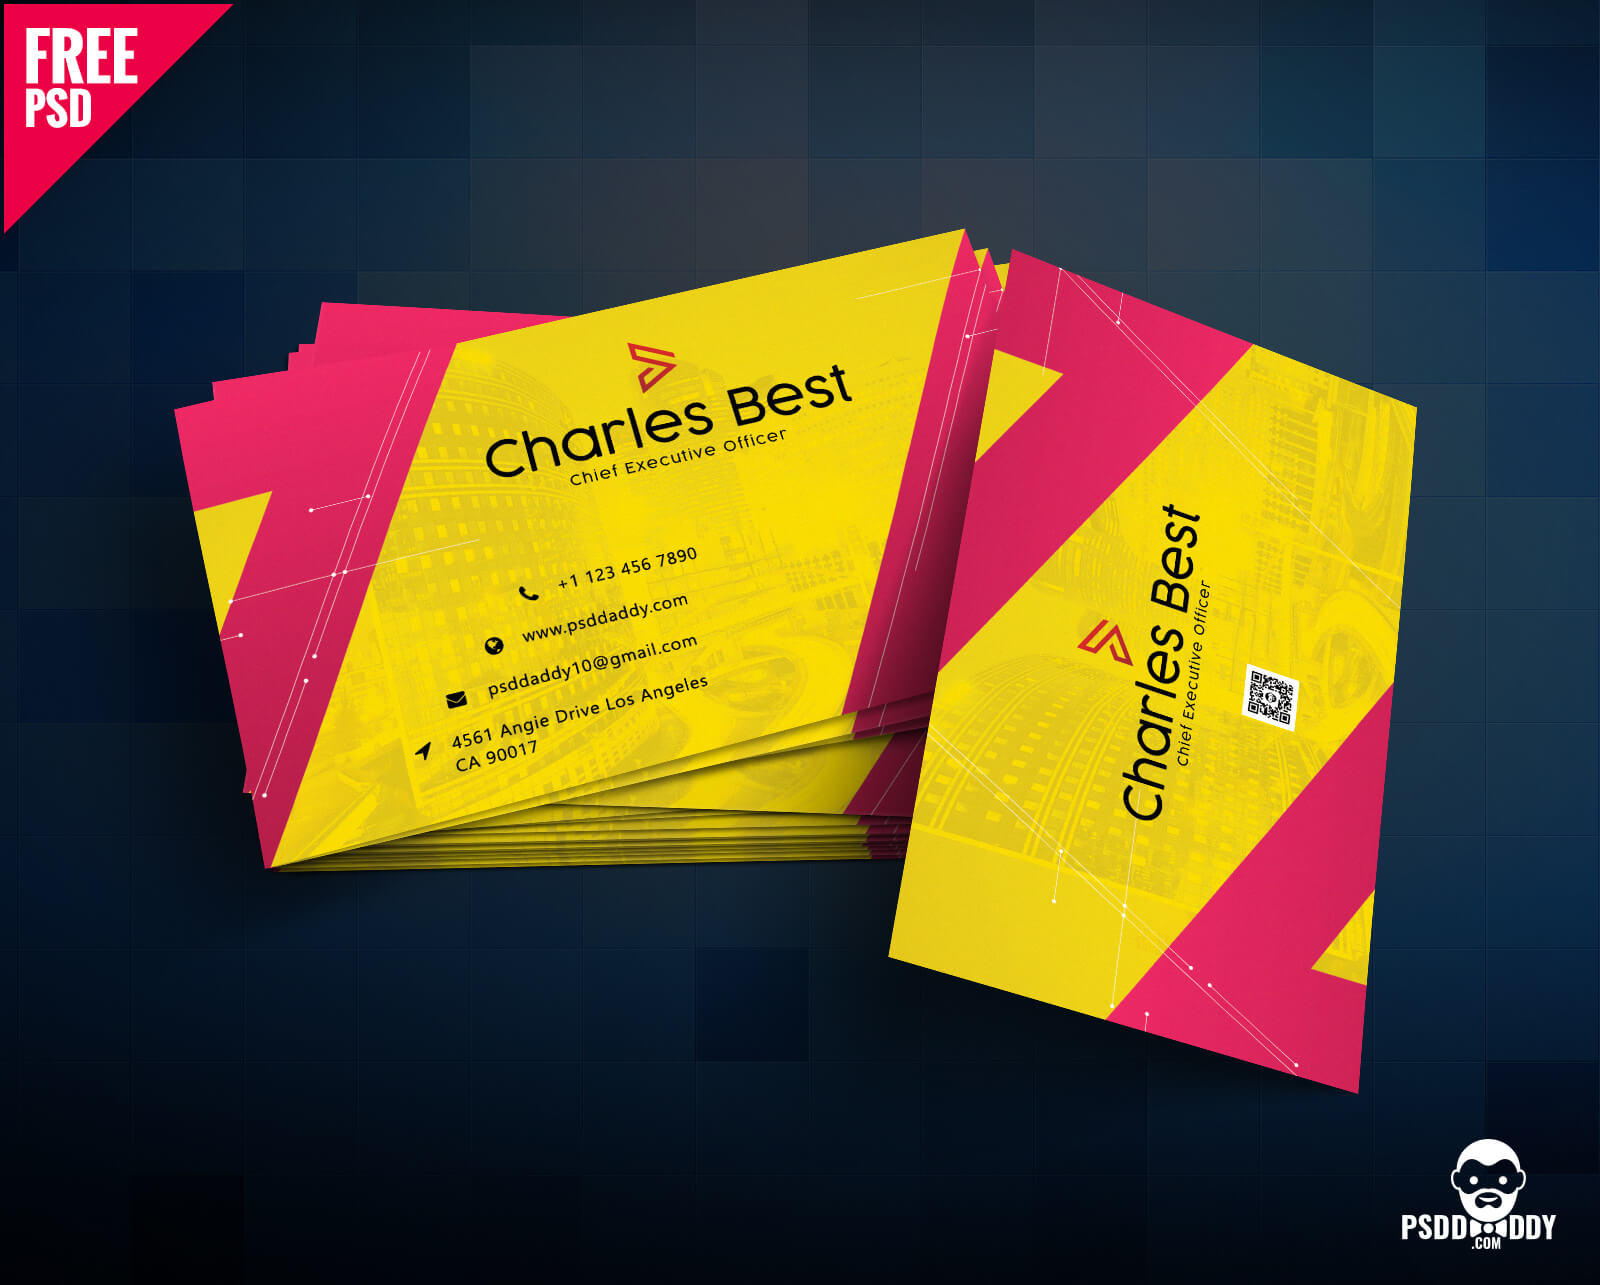 Download] Creative Business Card Free Psd | Psddaddy With Regard To Business Card Size Photoshop Template